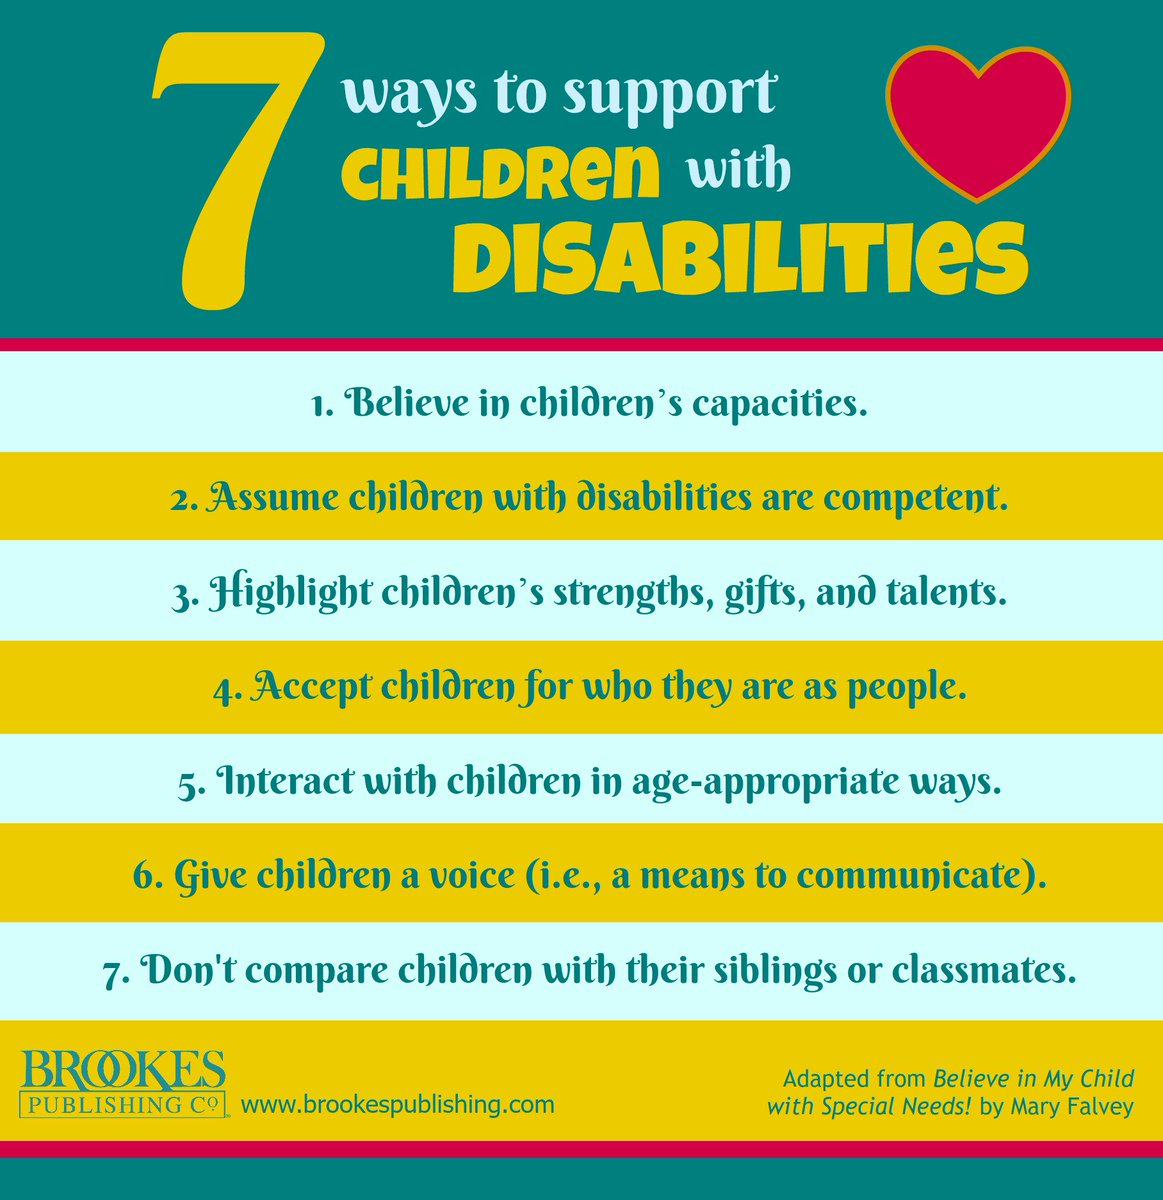 Brookes Publishing On Twitter 7 Ways To Support Children With